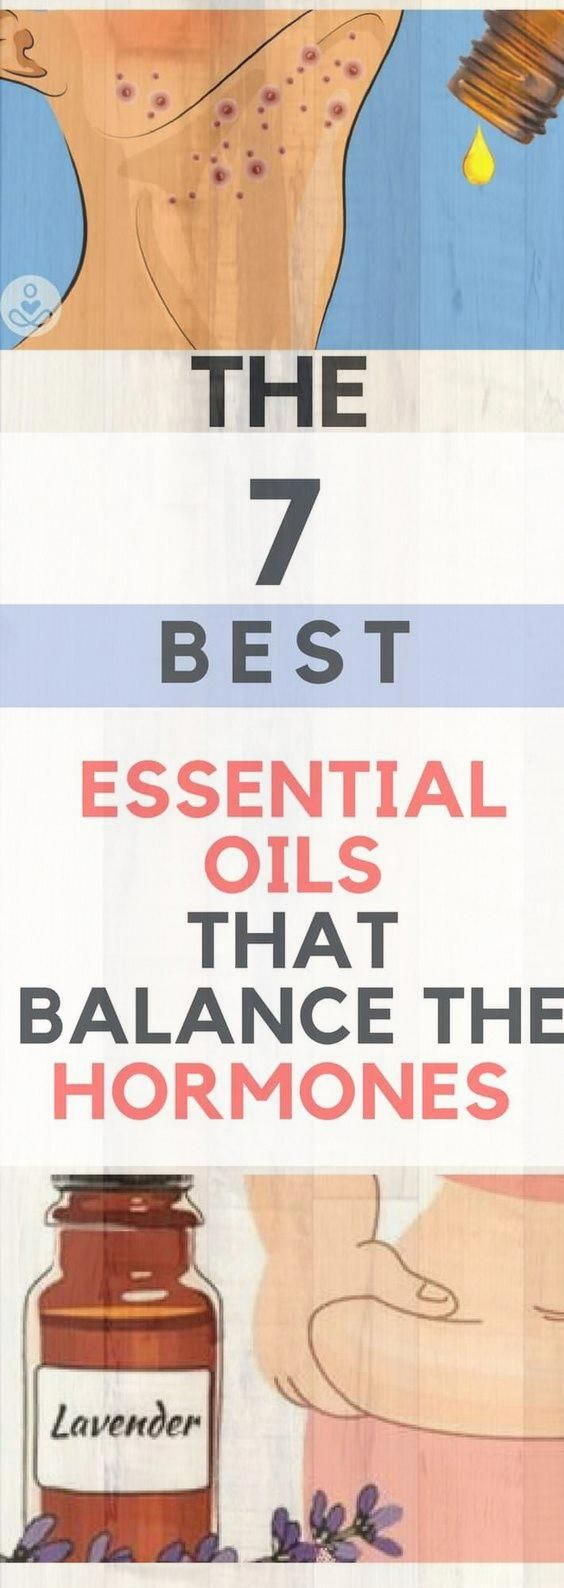 7 ESSENTIAL OILS THAT BALANCE HORMONES & HOW TO USE THEM � Today Health People#health #fitness #heal...